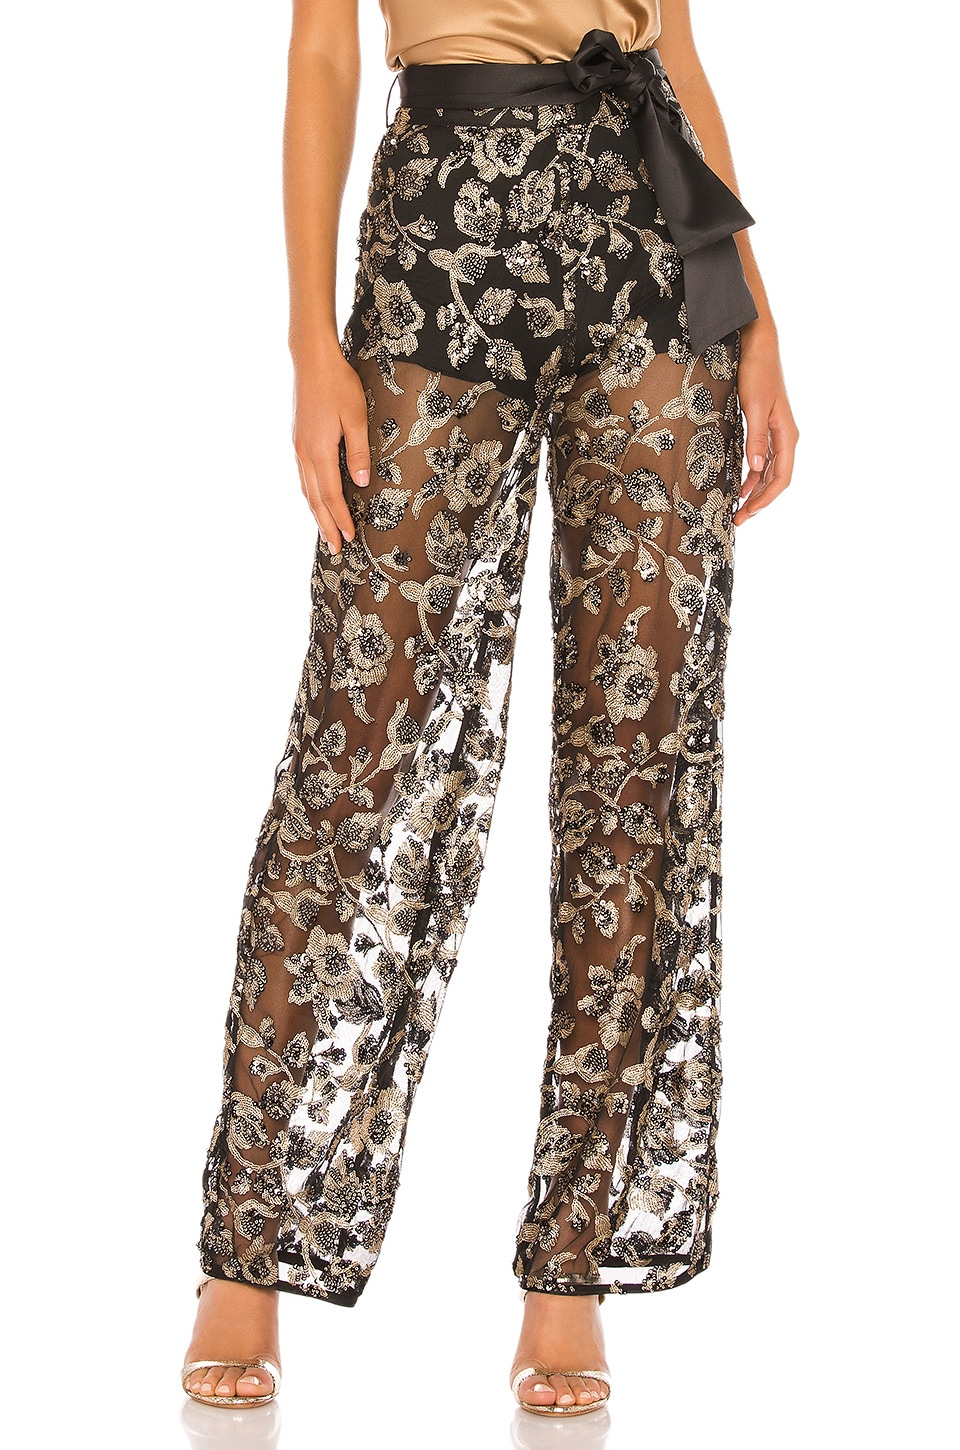 MAJORELLE Prescott Pant in Black & Gold